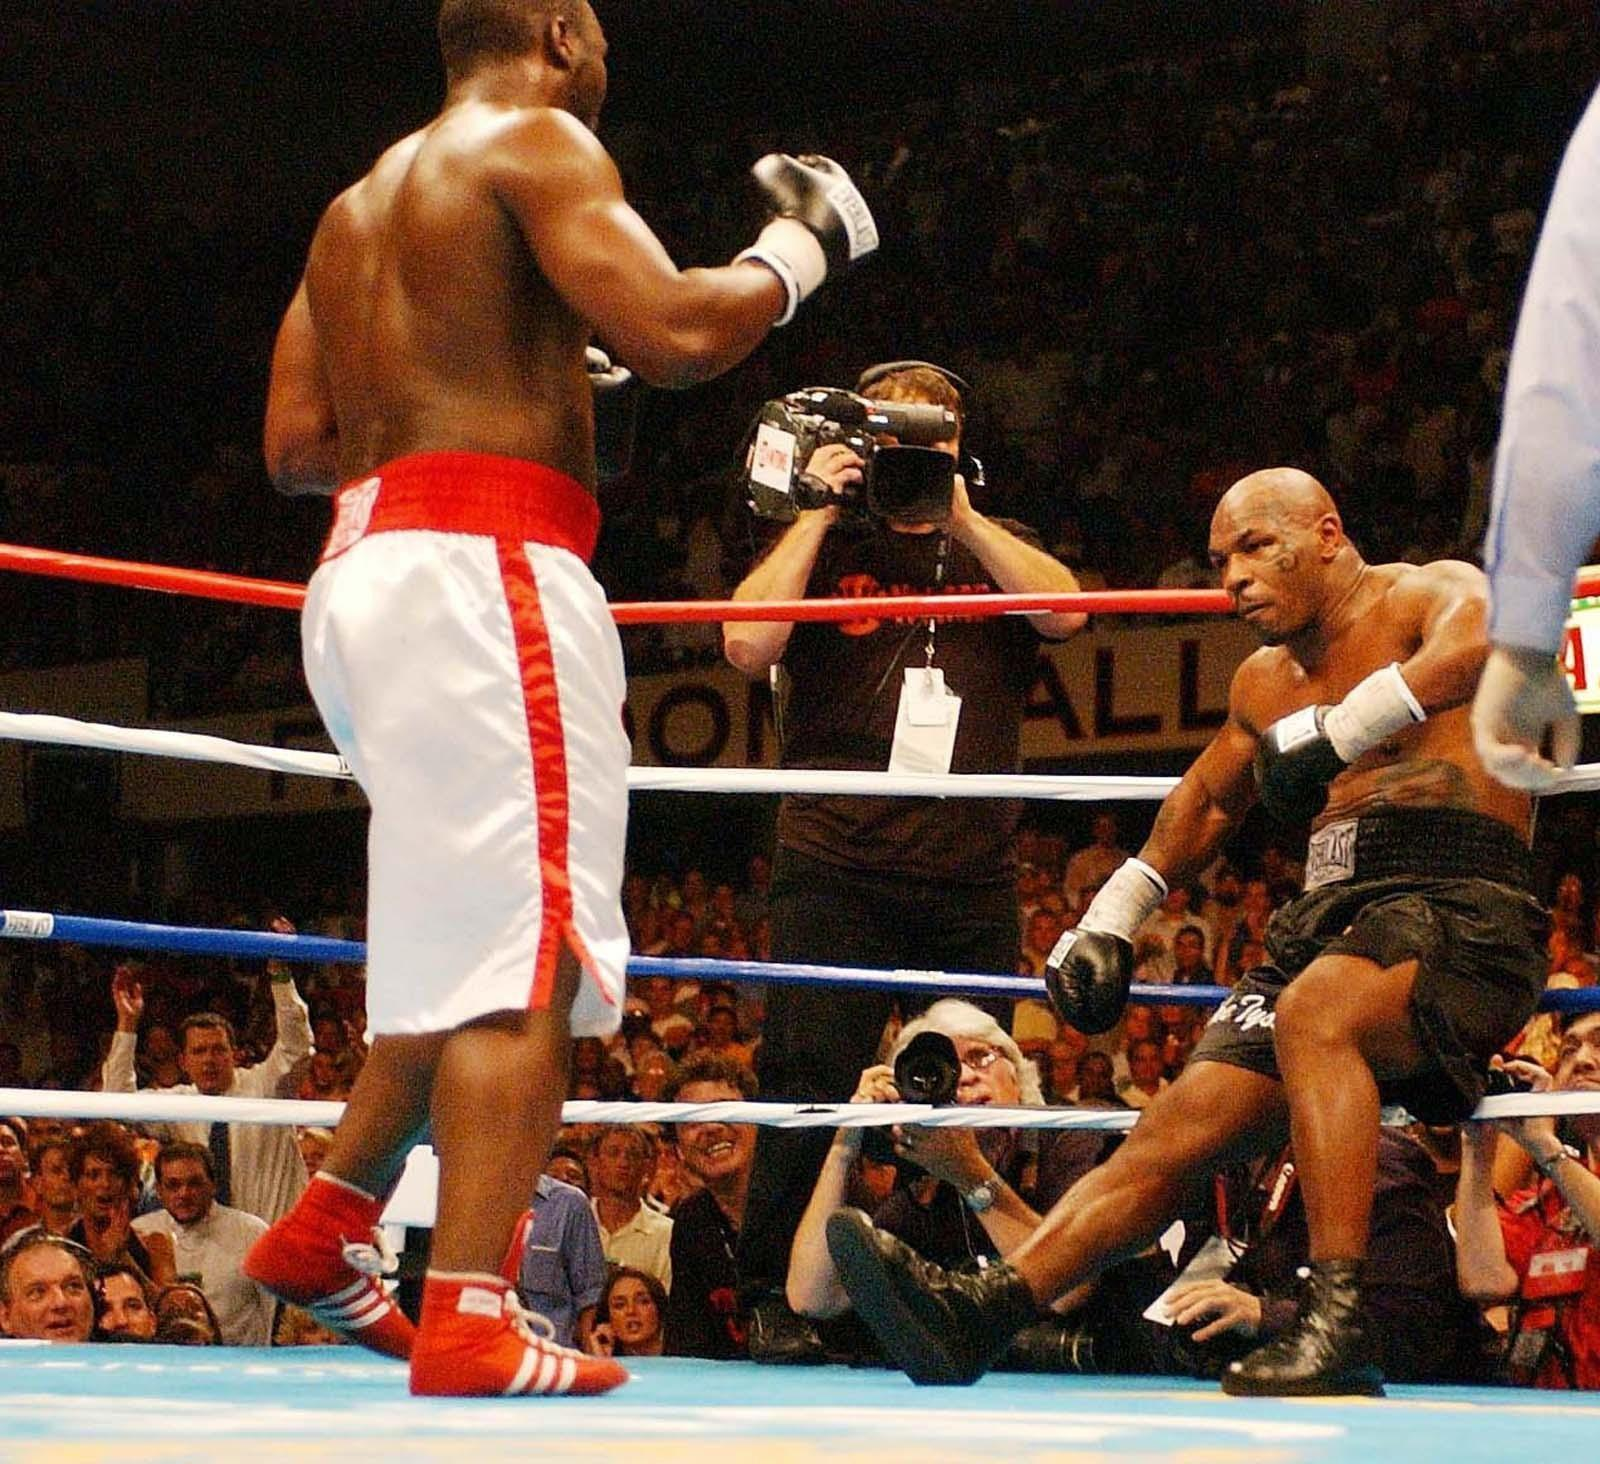 Back in 2004 Danny Williams sensationally knocked out Mike Tyson